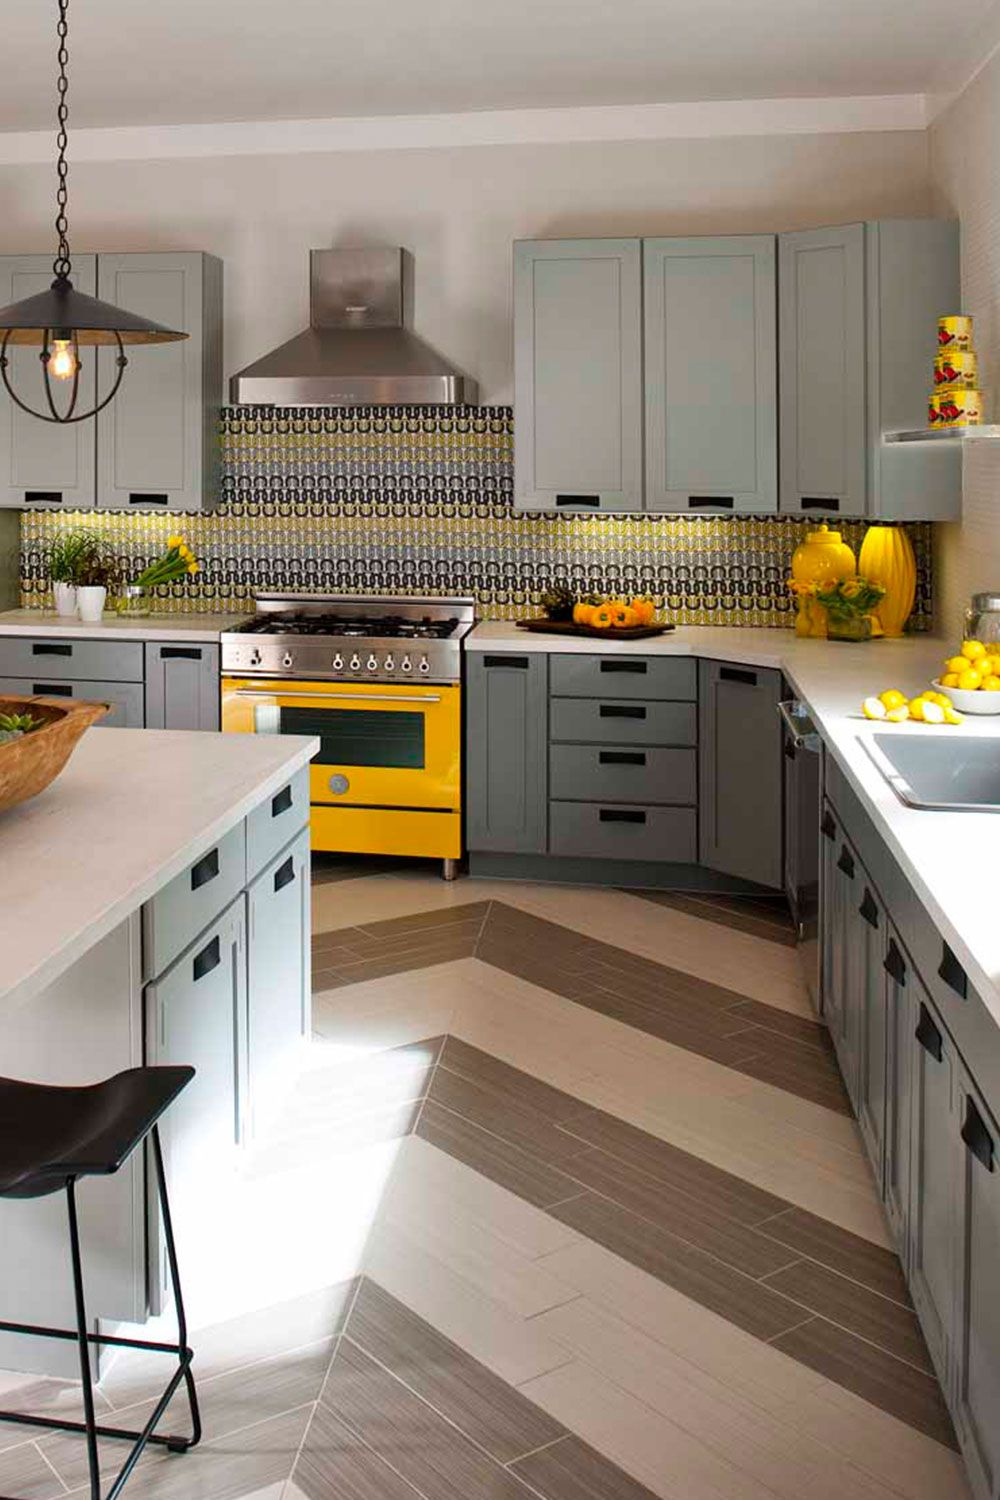 21 Yellow Kitchen Ideas   Decorating Tips for Yellow ...